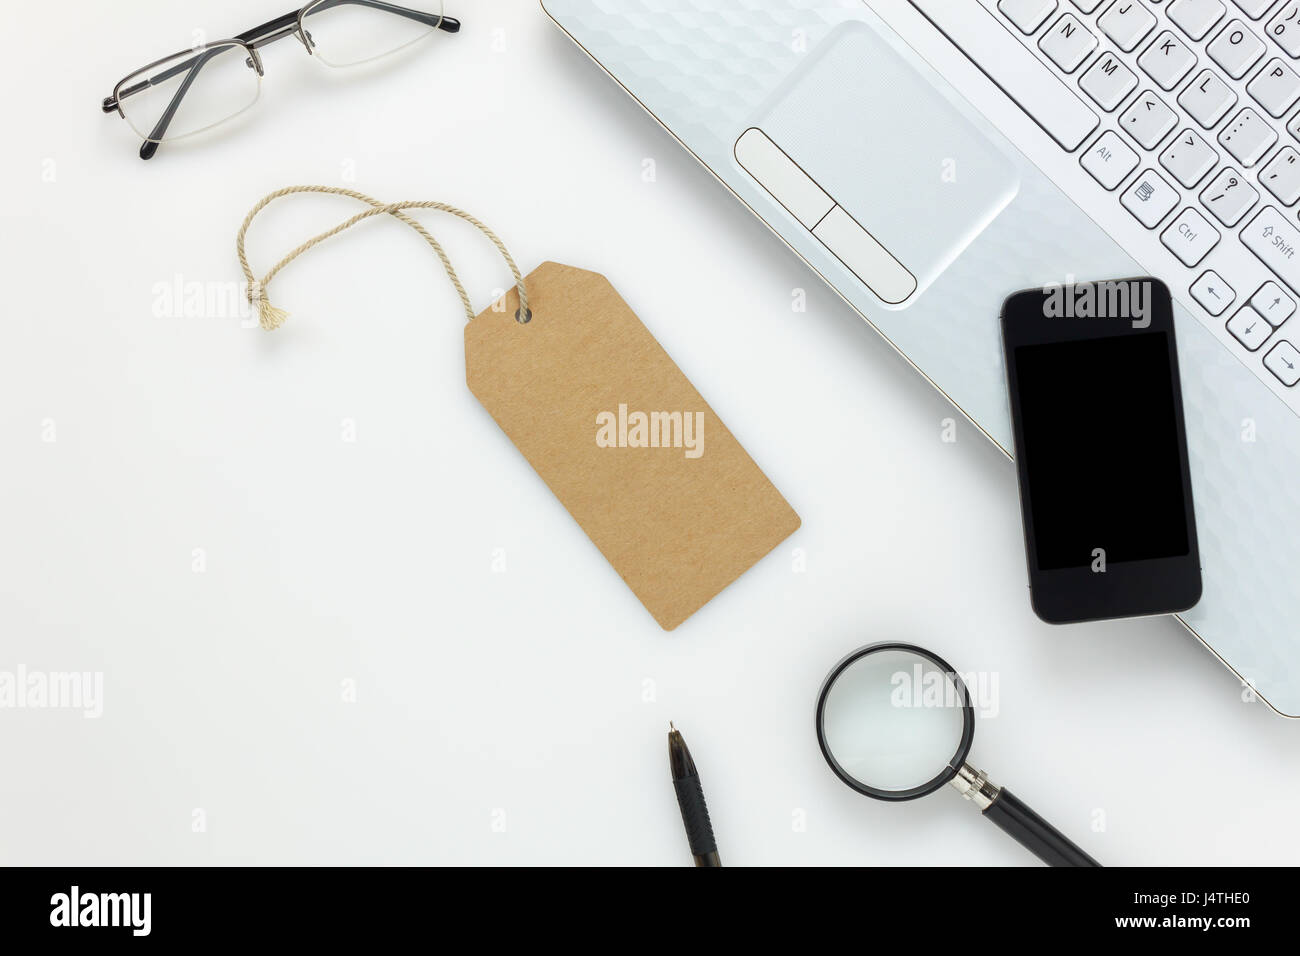 Top View Accessories Business Office Deskbile Stock Photo